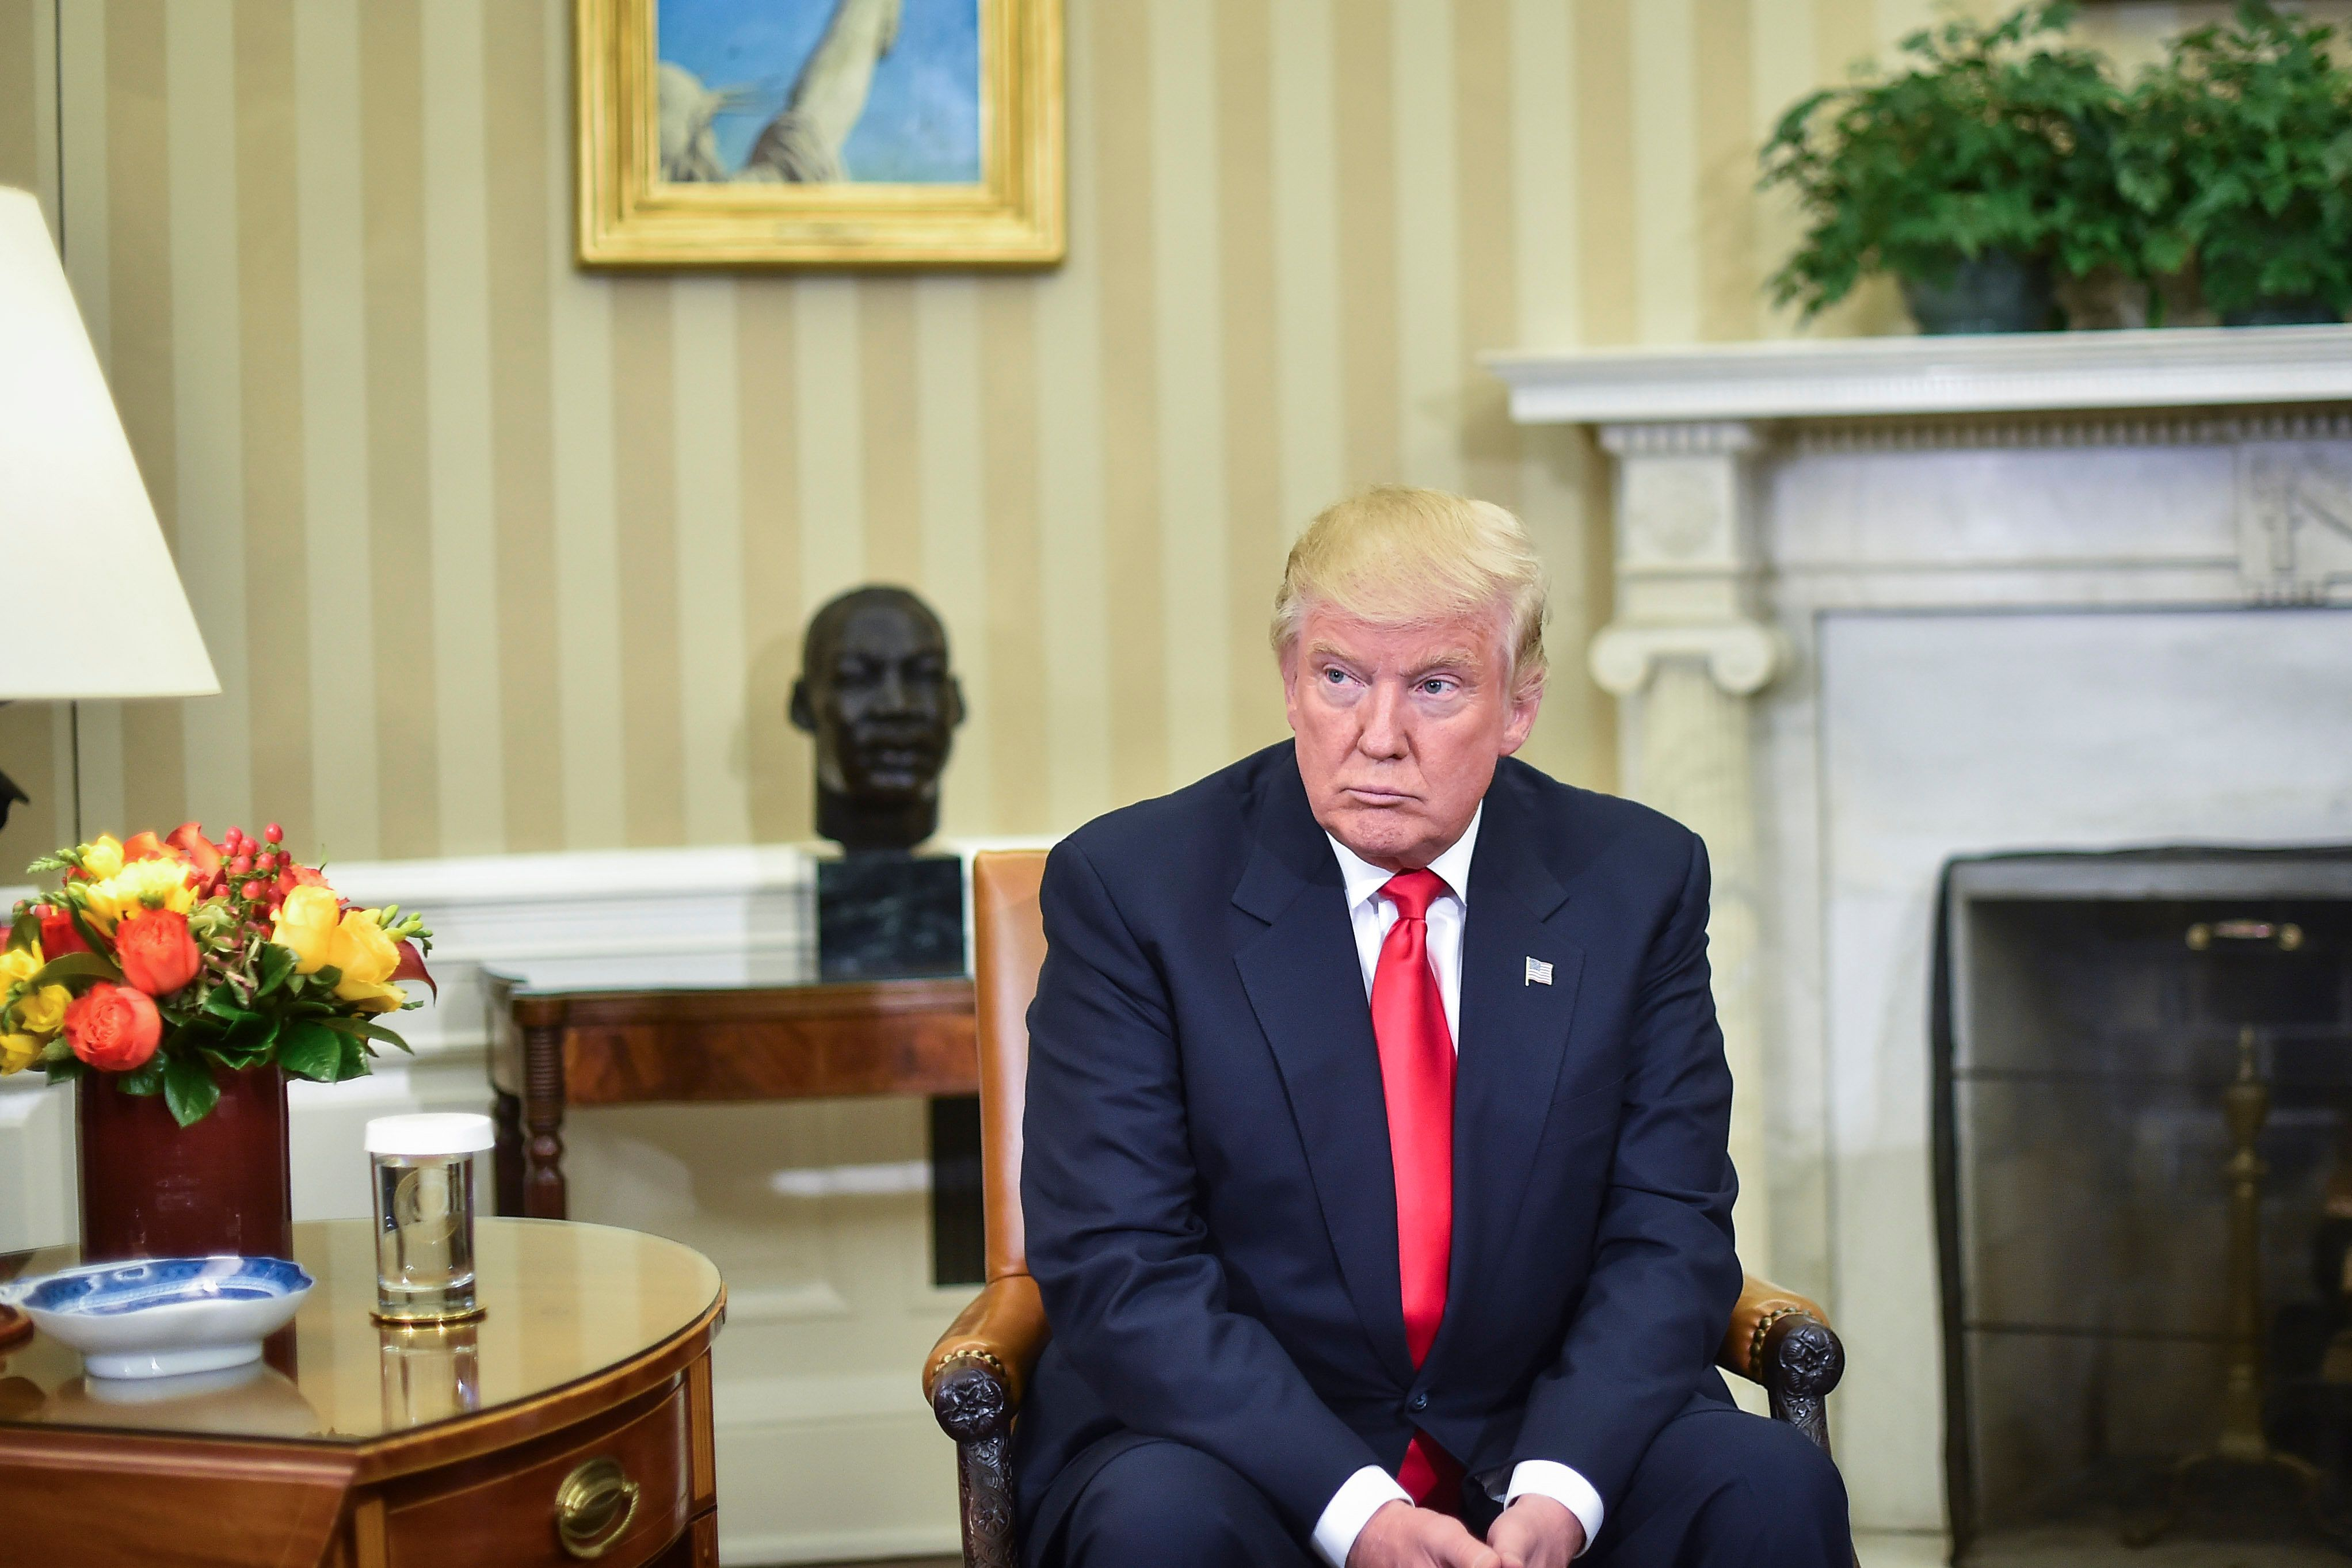 WASHINGTON, DC - NOVEMBER 10: President-elect Donald Trump listens as President Barack Obama talks to the media in the Oval Office of the White House in Washington, Thursday, Nov. 10, 2016. (Photo by Jabin Botsford/The Washington Post via Getty Images)